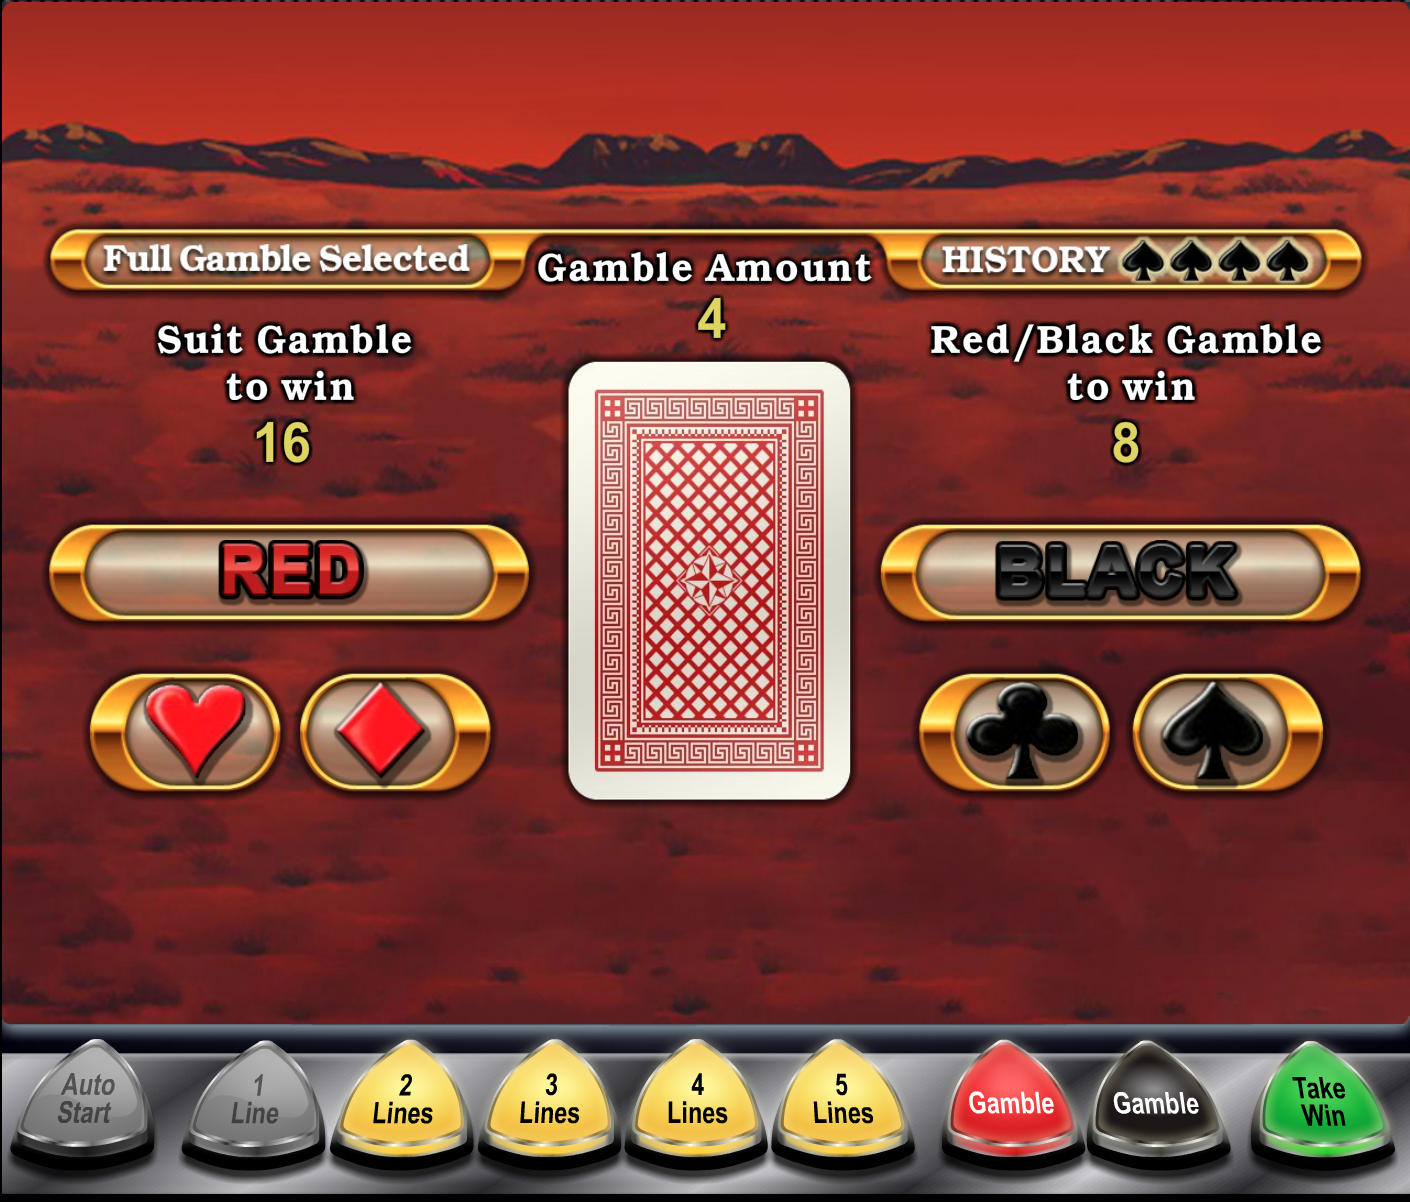 Big Red Gamble feature